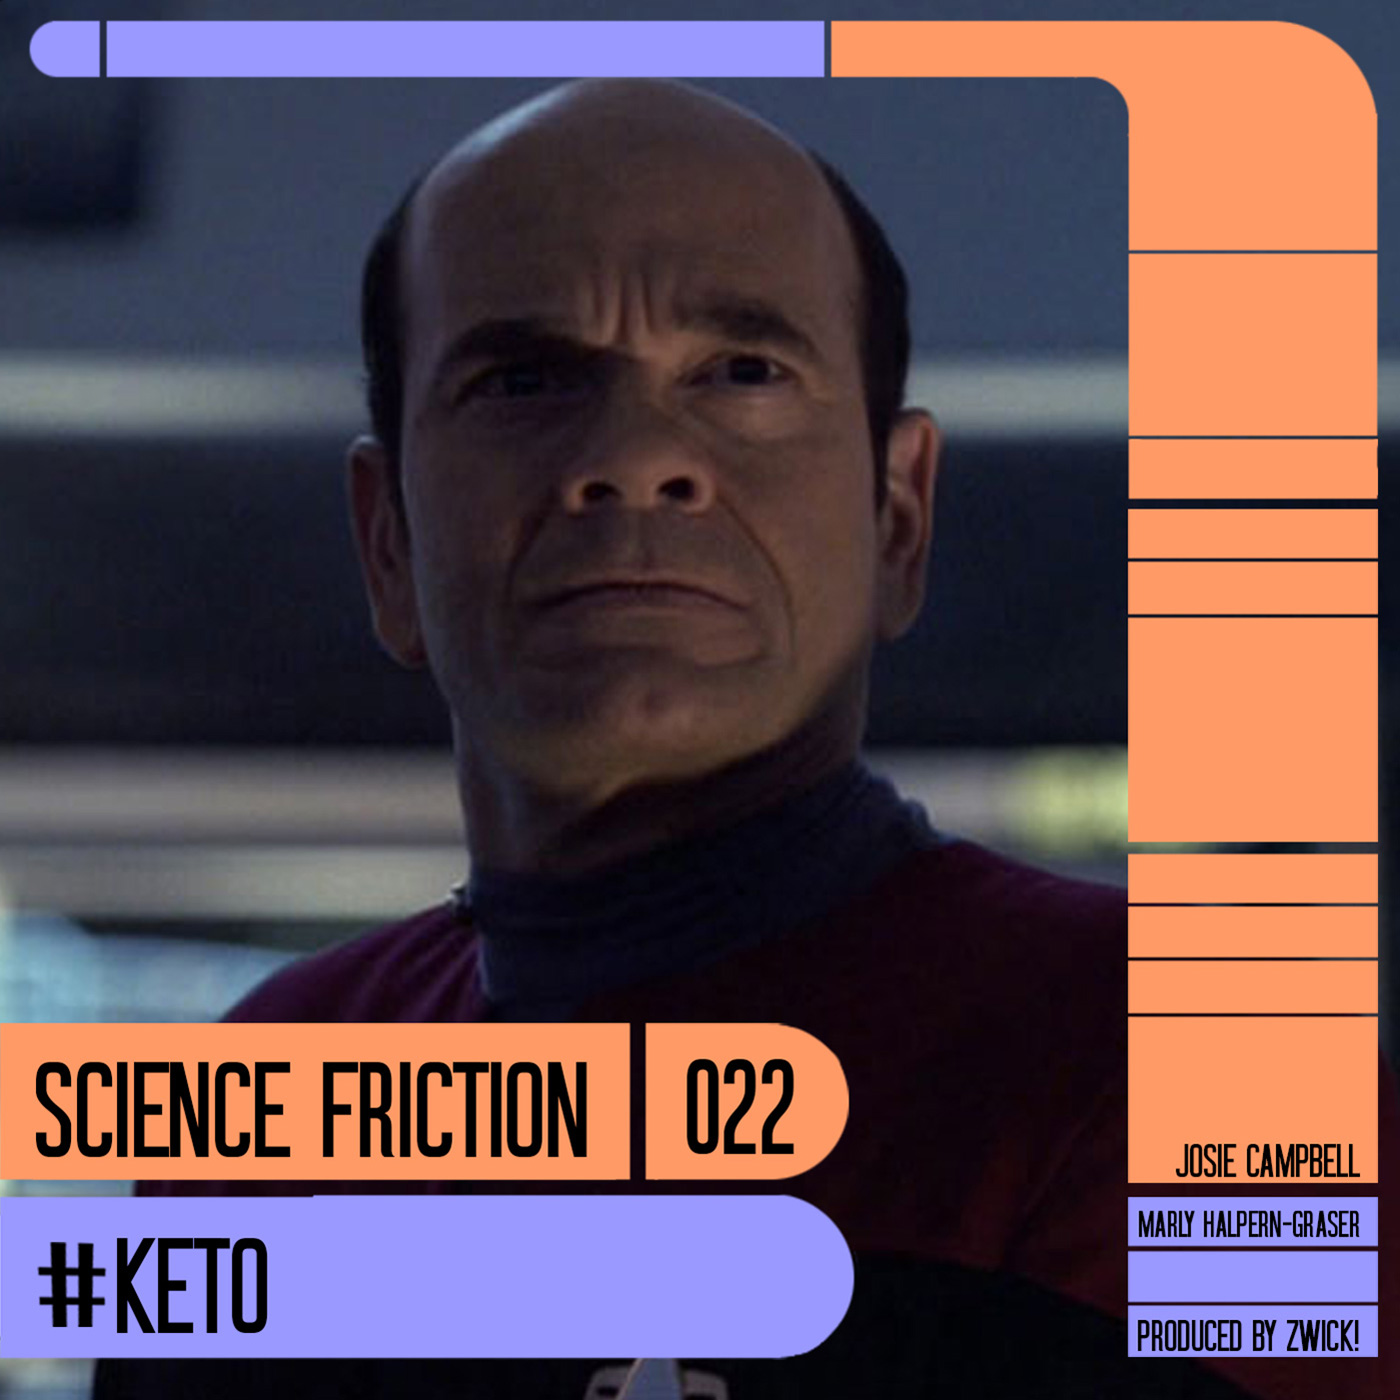 Science Friction 022: #Keto